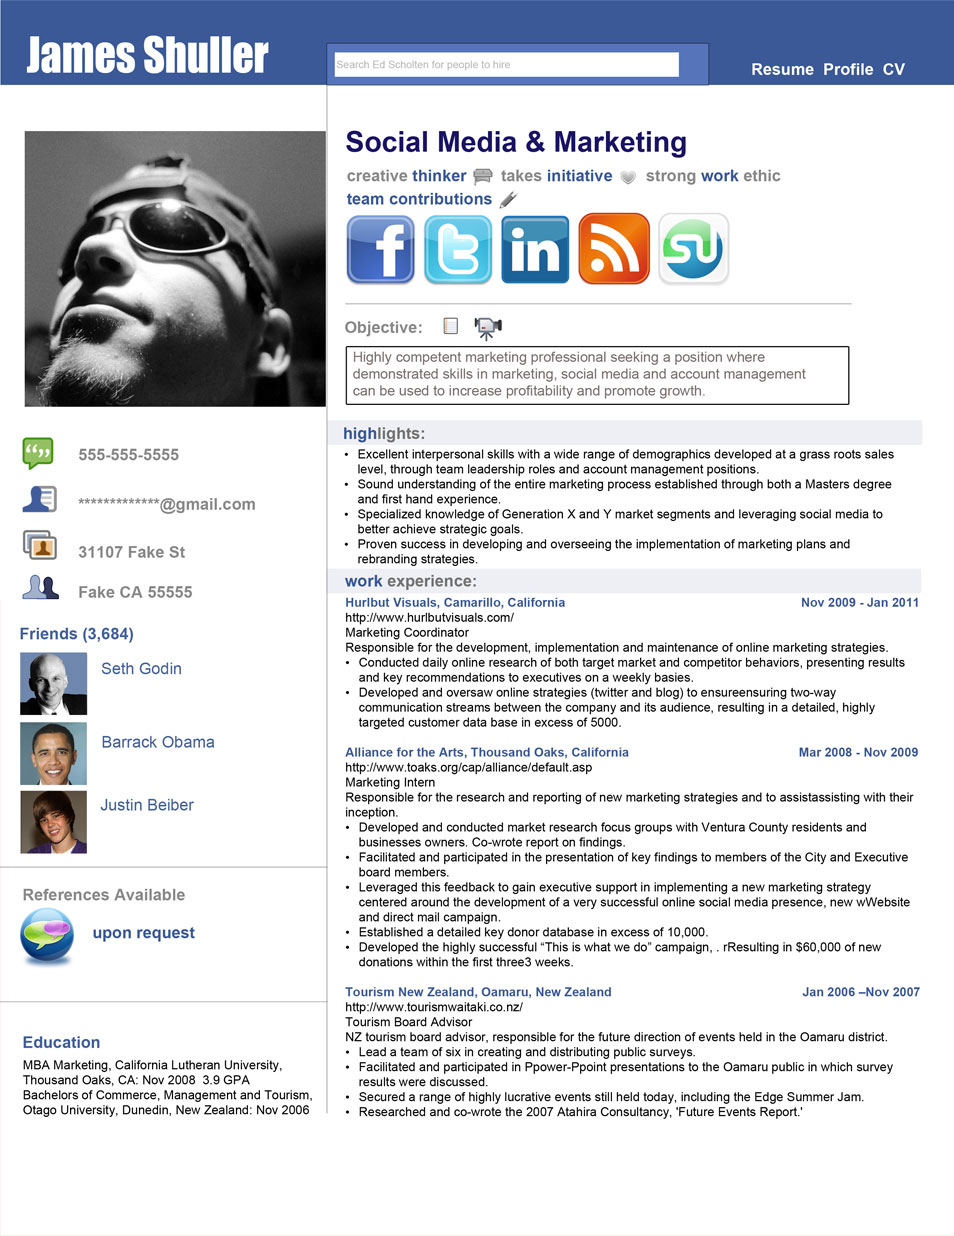 Opposenewapstandardsus  Pleasing  Creative Cvresume Design Inspiration With Engaging Resume  Social Network Adv With Charming Office Resume Template Also Creating The Perfect Resume In Addition Retail Duties For Resume And Debt Collector Resume As Well As Registered Nurse Resume Templates Additionally Private Tutor Resume From Cssauthorcom With Opposenewapstandardsus  Engaging  Creative Cvresume Design Inspiration With Charming Resume  Social Network Adv And Pleasing Office Resume Template Also Creating The Perfect Resume In Addition Retail Duties For Resume From Cssauthorcom